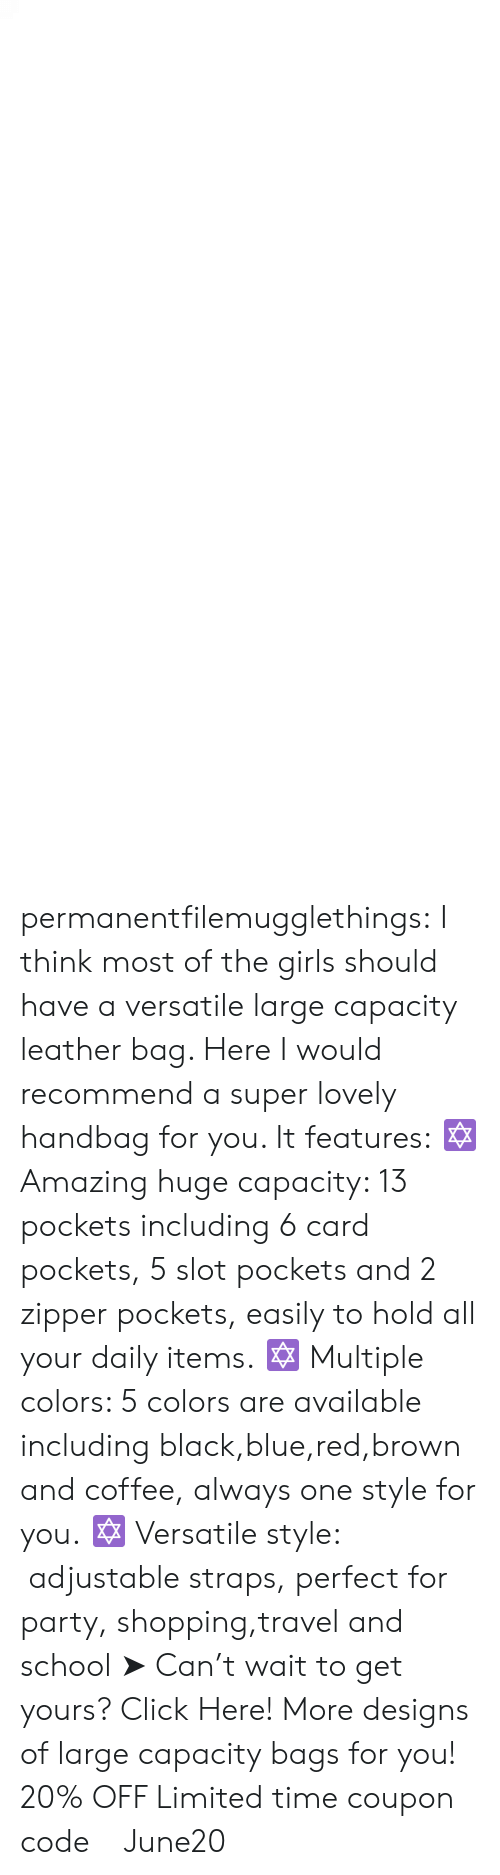 Click, Girls, and Party: permanentfilemugglethings:  I think most of the girls should have a versatile large capacity leather bag. Here I would recommend a super lovely handbag for you. It features: ✡ Amazing huge capacity: 13 pockets including 6 card pockets, 5 slot pockets and 2 zipper pockets, easily to hold all your daily items. ✡ Multiple colors: 5 colors are available including black,blue,red,brown and coffee, always one style for you. ✡ Versatile style:  adjustable straps, perfect for party, shopping,travel and school ➤ Can't wait to get yours? Click Here! More designs of large capacity bags for you! 20% OFF Limited time coupon code : June20